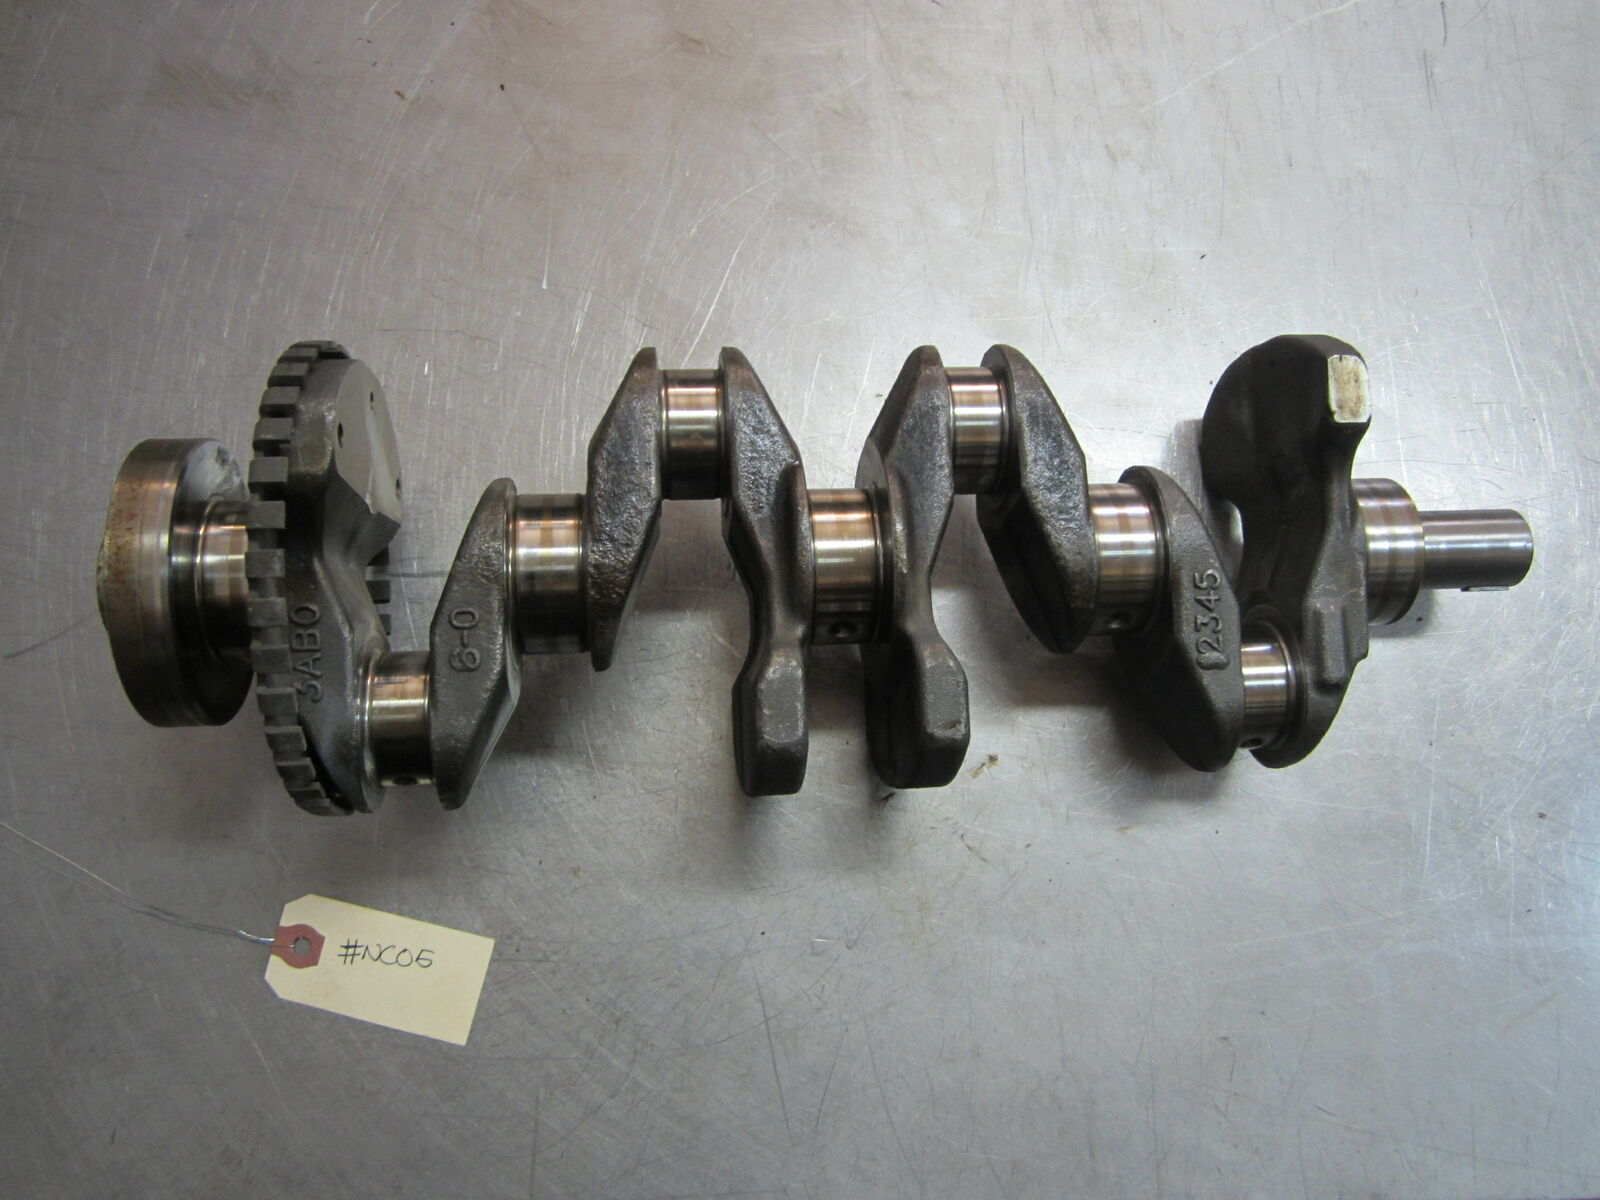 Primary image for #NC05a Crankshaft Standard 2014 Nissan Versa 1.6